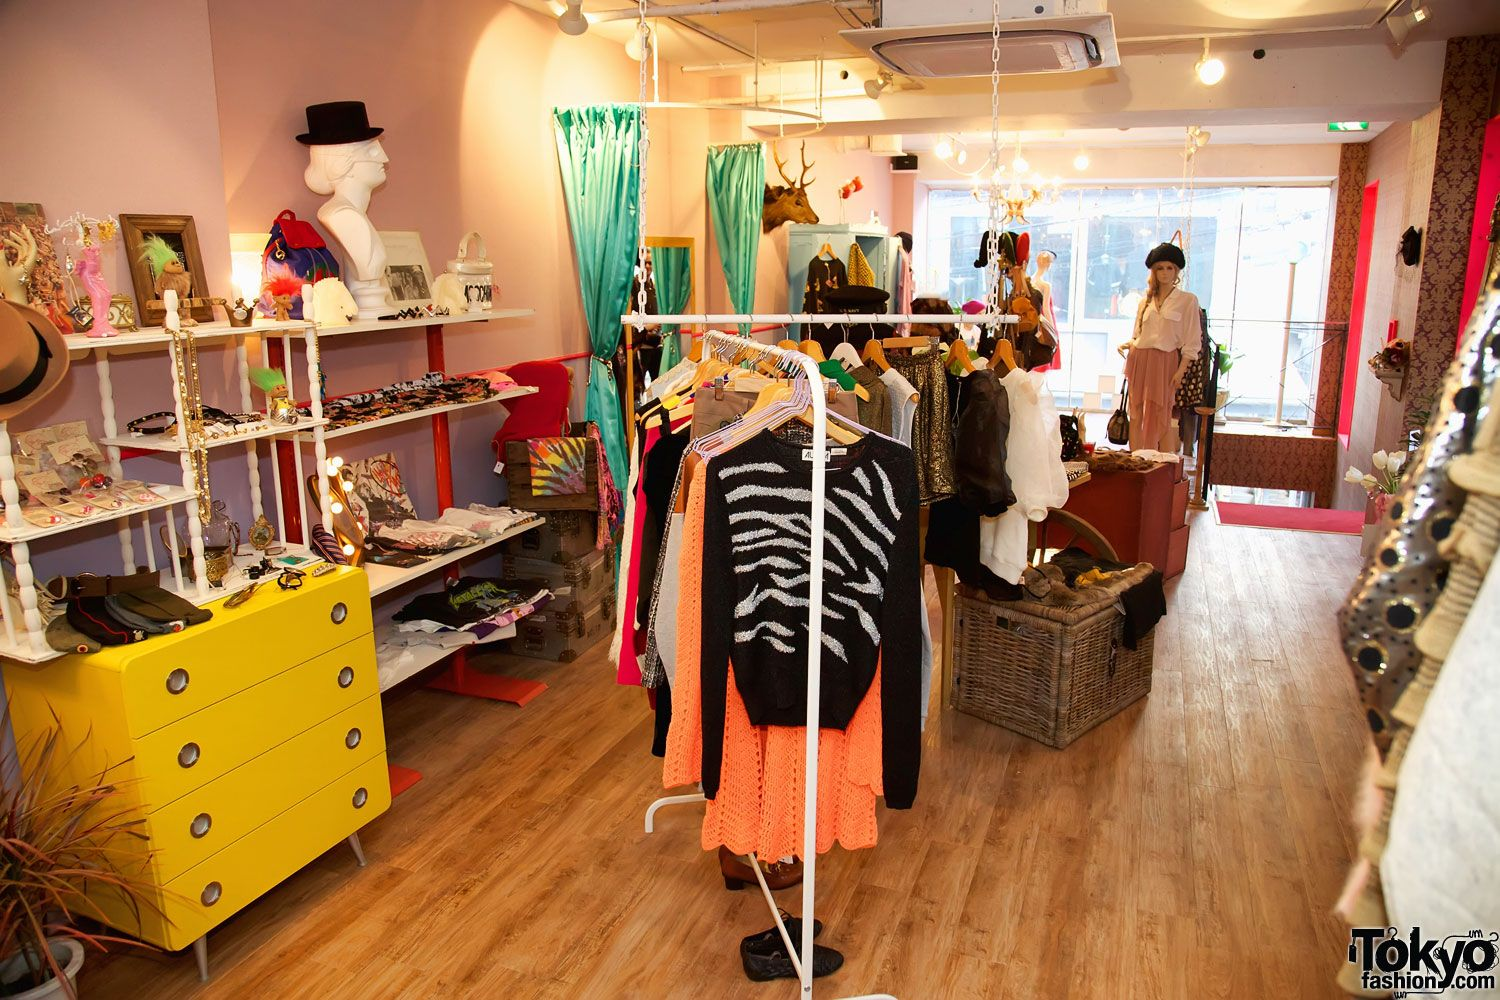 Small boutique interior design ideas number of handmade and indie fashions from young japanese designers